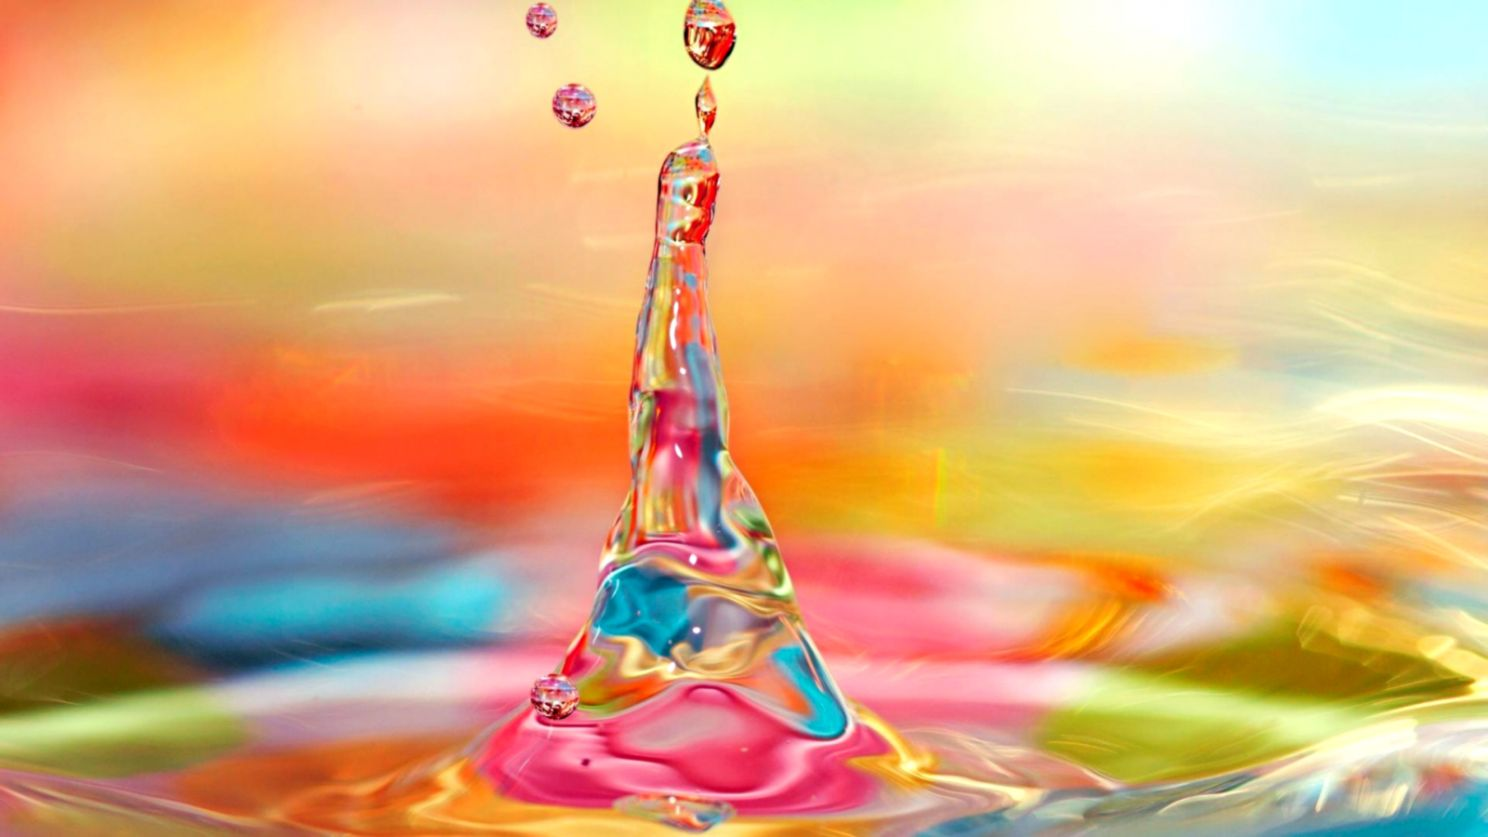 bright colorful wallpaper | image wallpapers hd